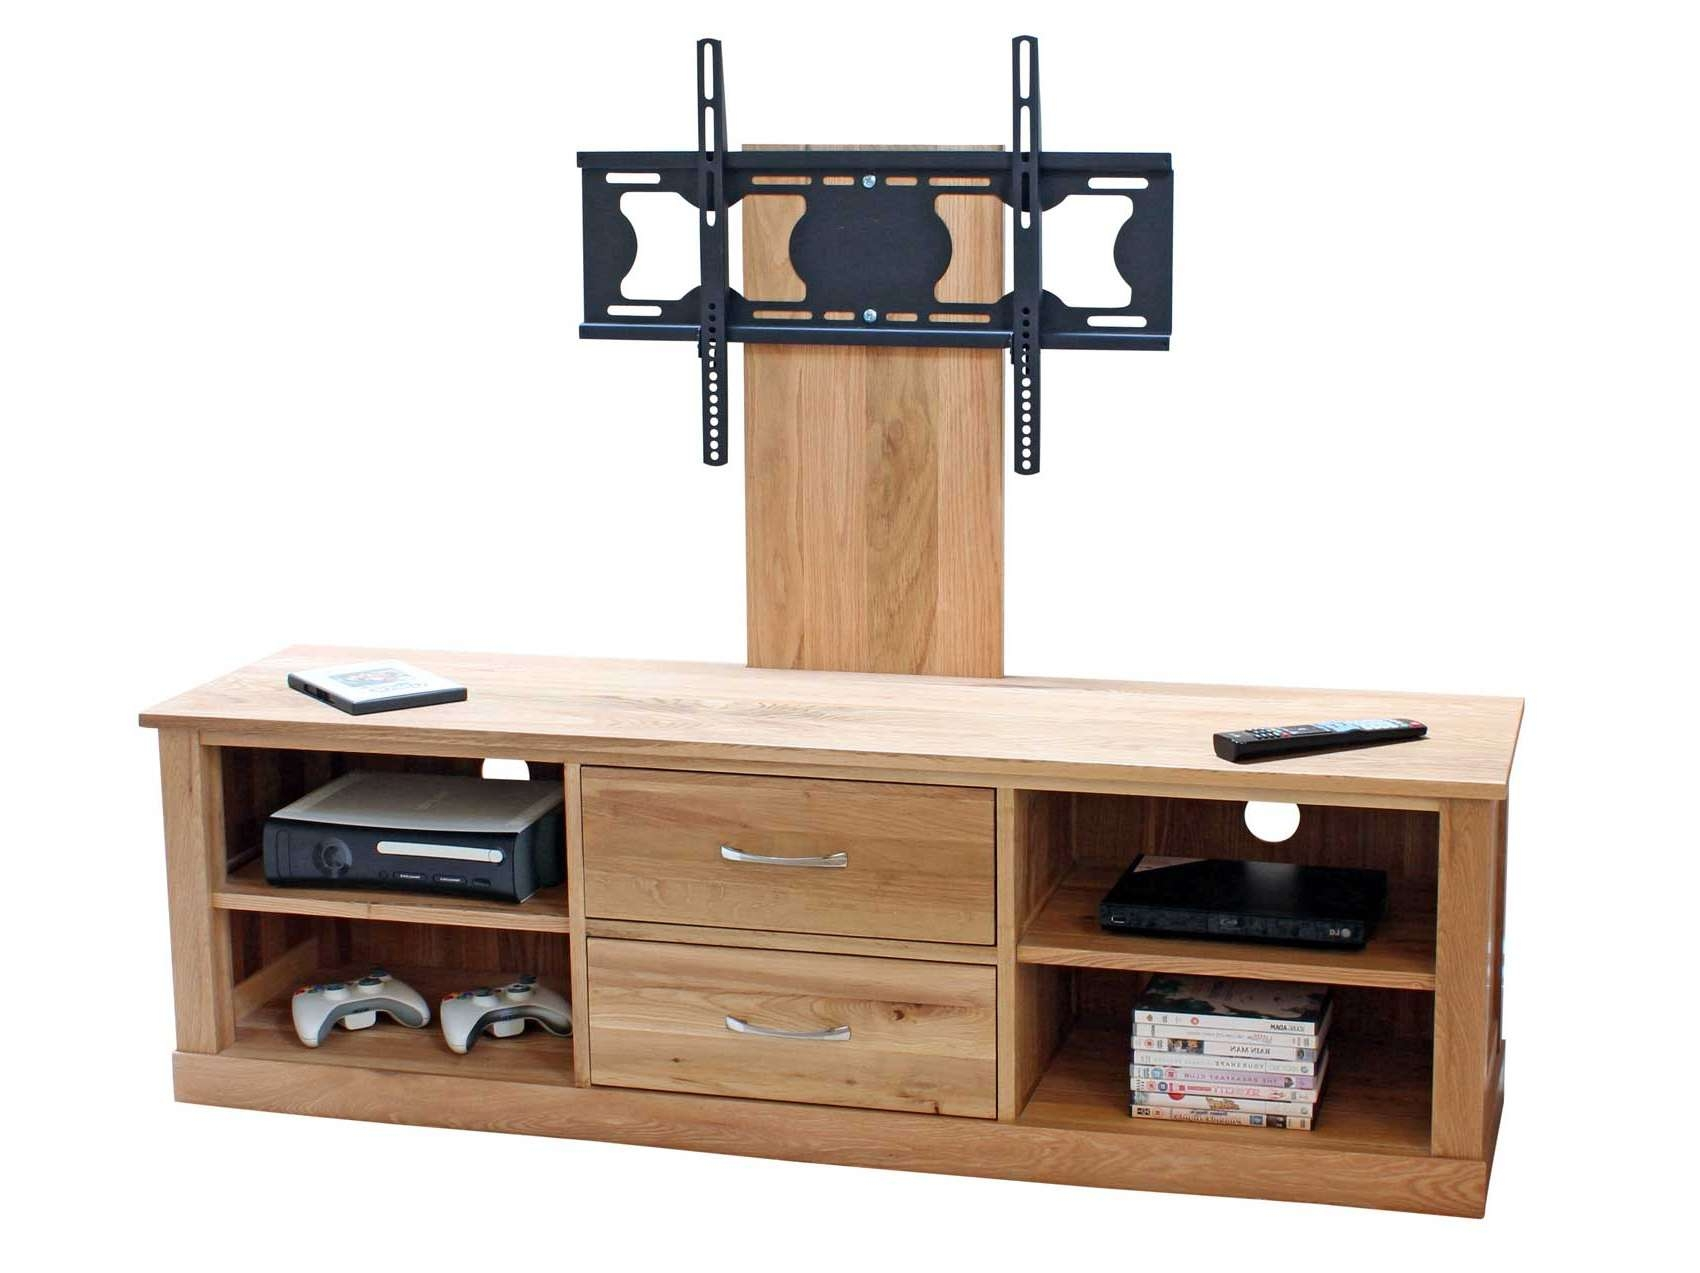 Illustrious Tv Stands Oak Furniture Land Tags : Tv Stands In Oak With Regard To Oak Furniture Tv Stands (Gallery 20 of 20)